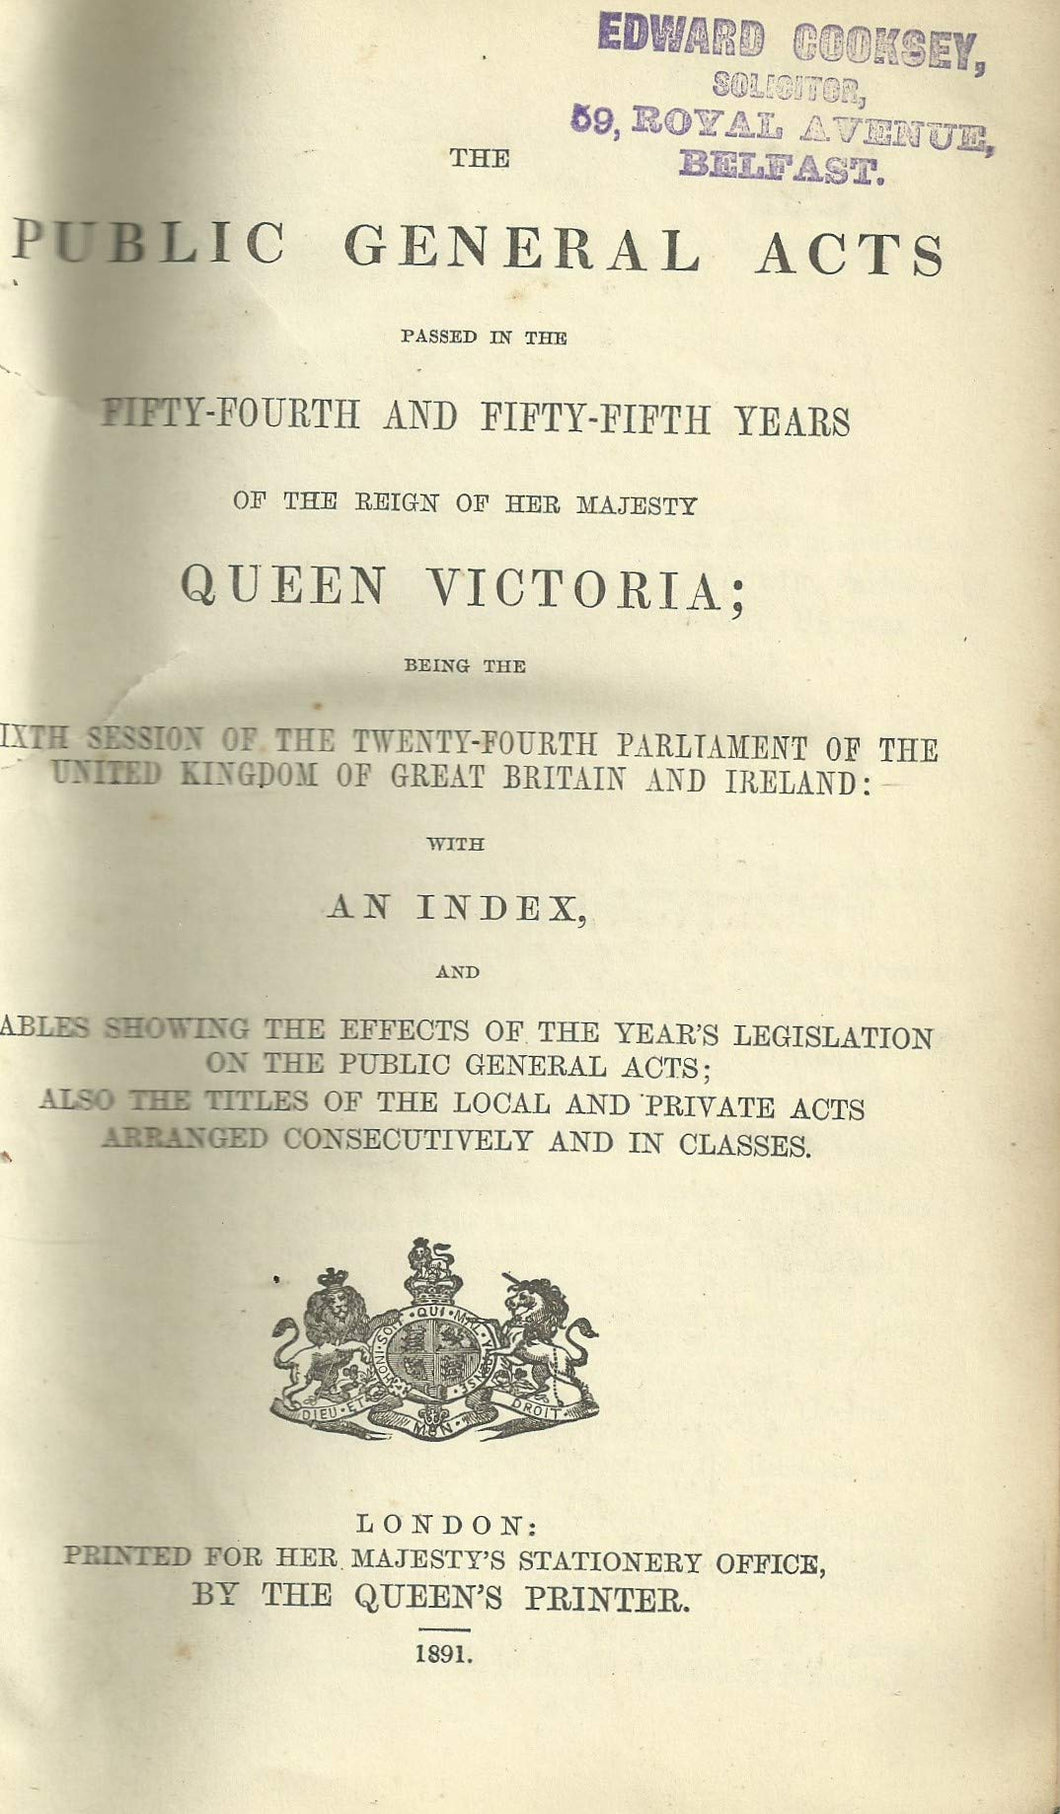 Statutes 54 and 55 Vict: The Public General Acts Passed in the Fifty-Fourth and Fifty-Fifth Years of the Reign of Her Majesty Queen Victoria